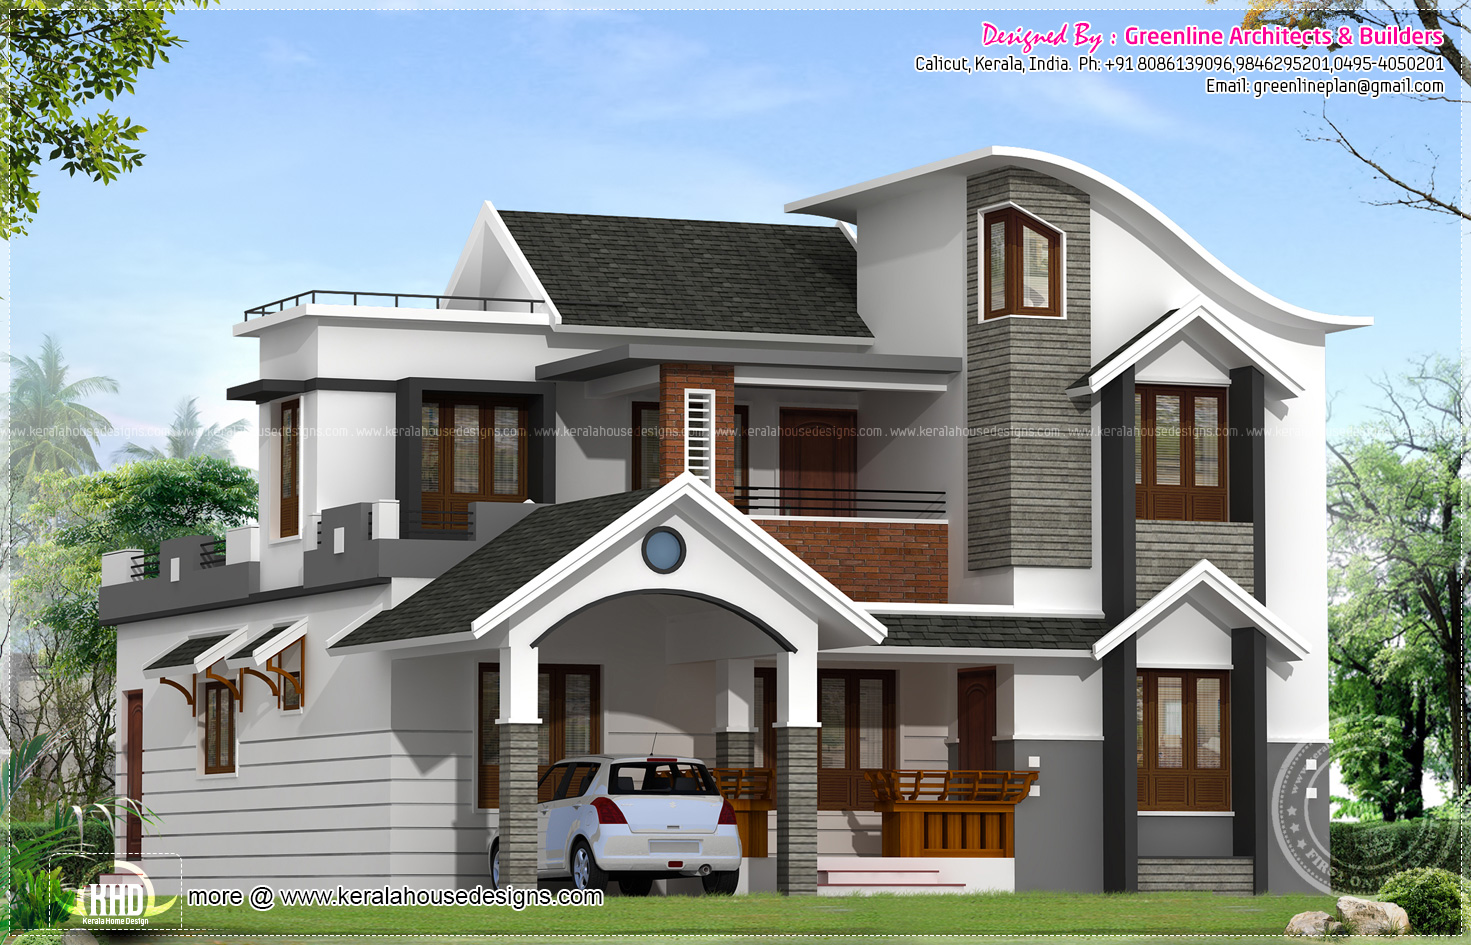 Modern house architecture in kerala kerala home design for Homes models and plans